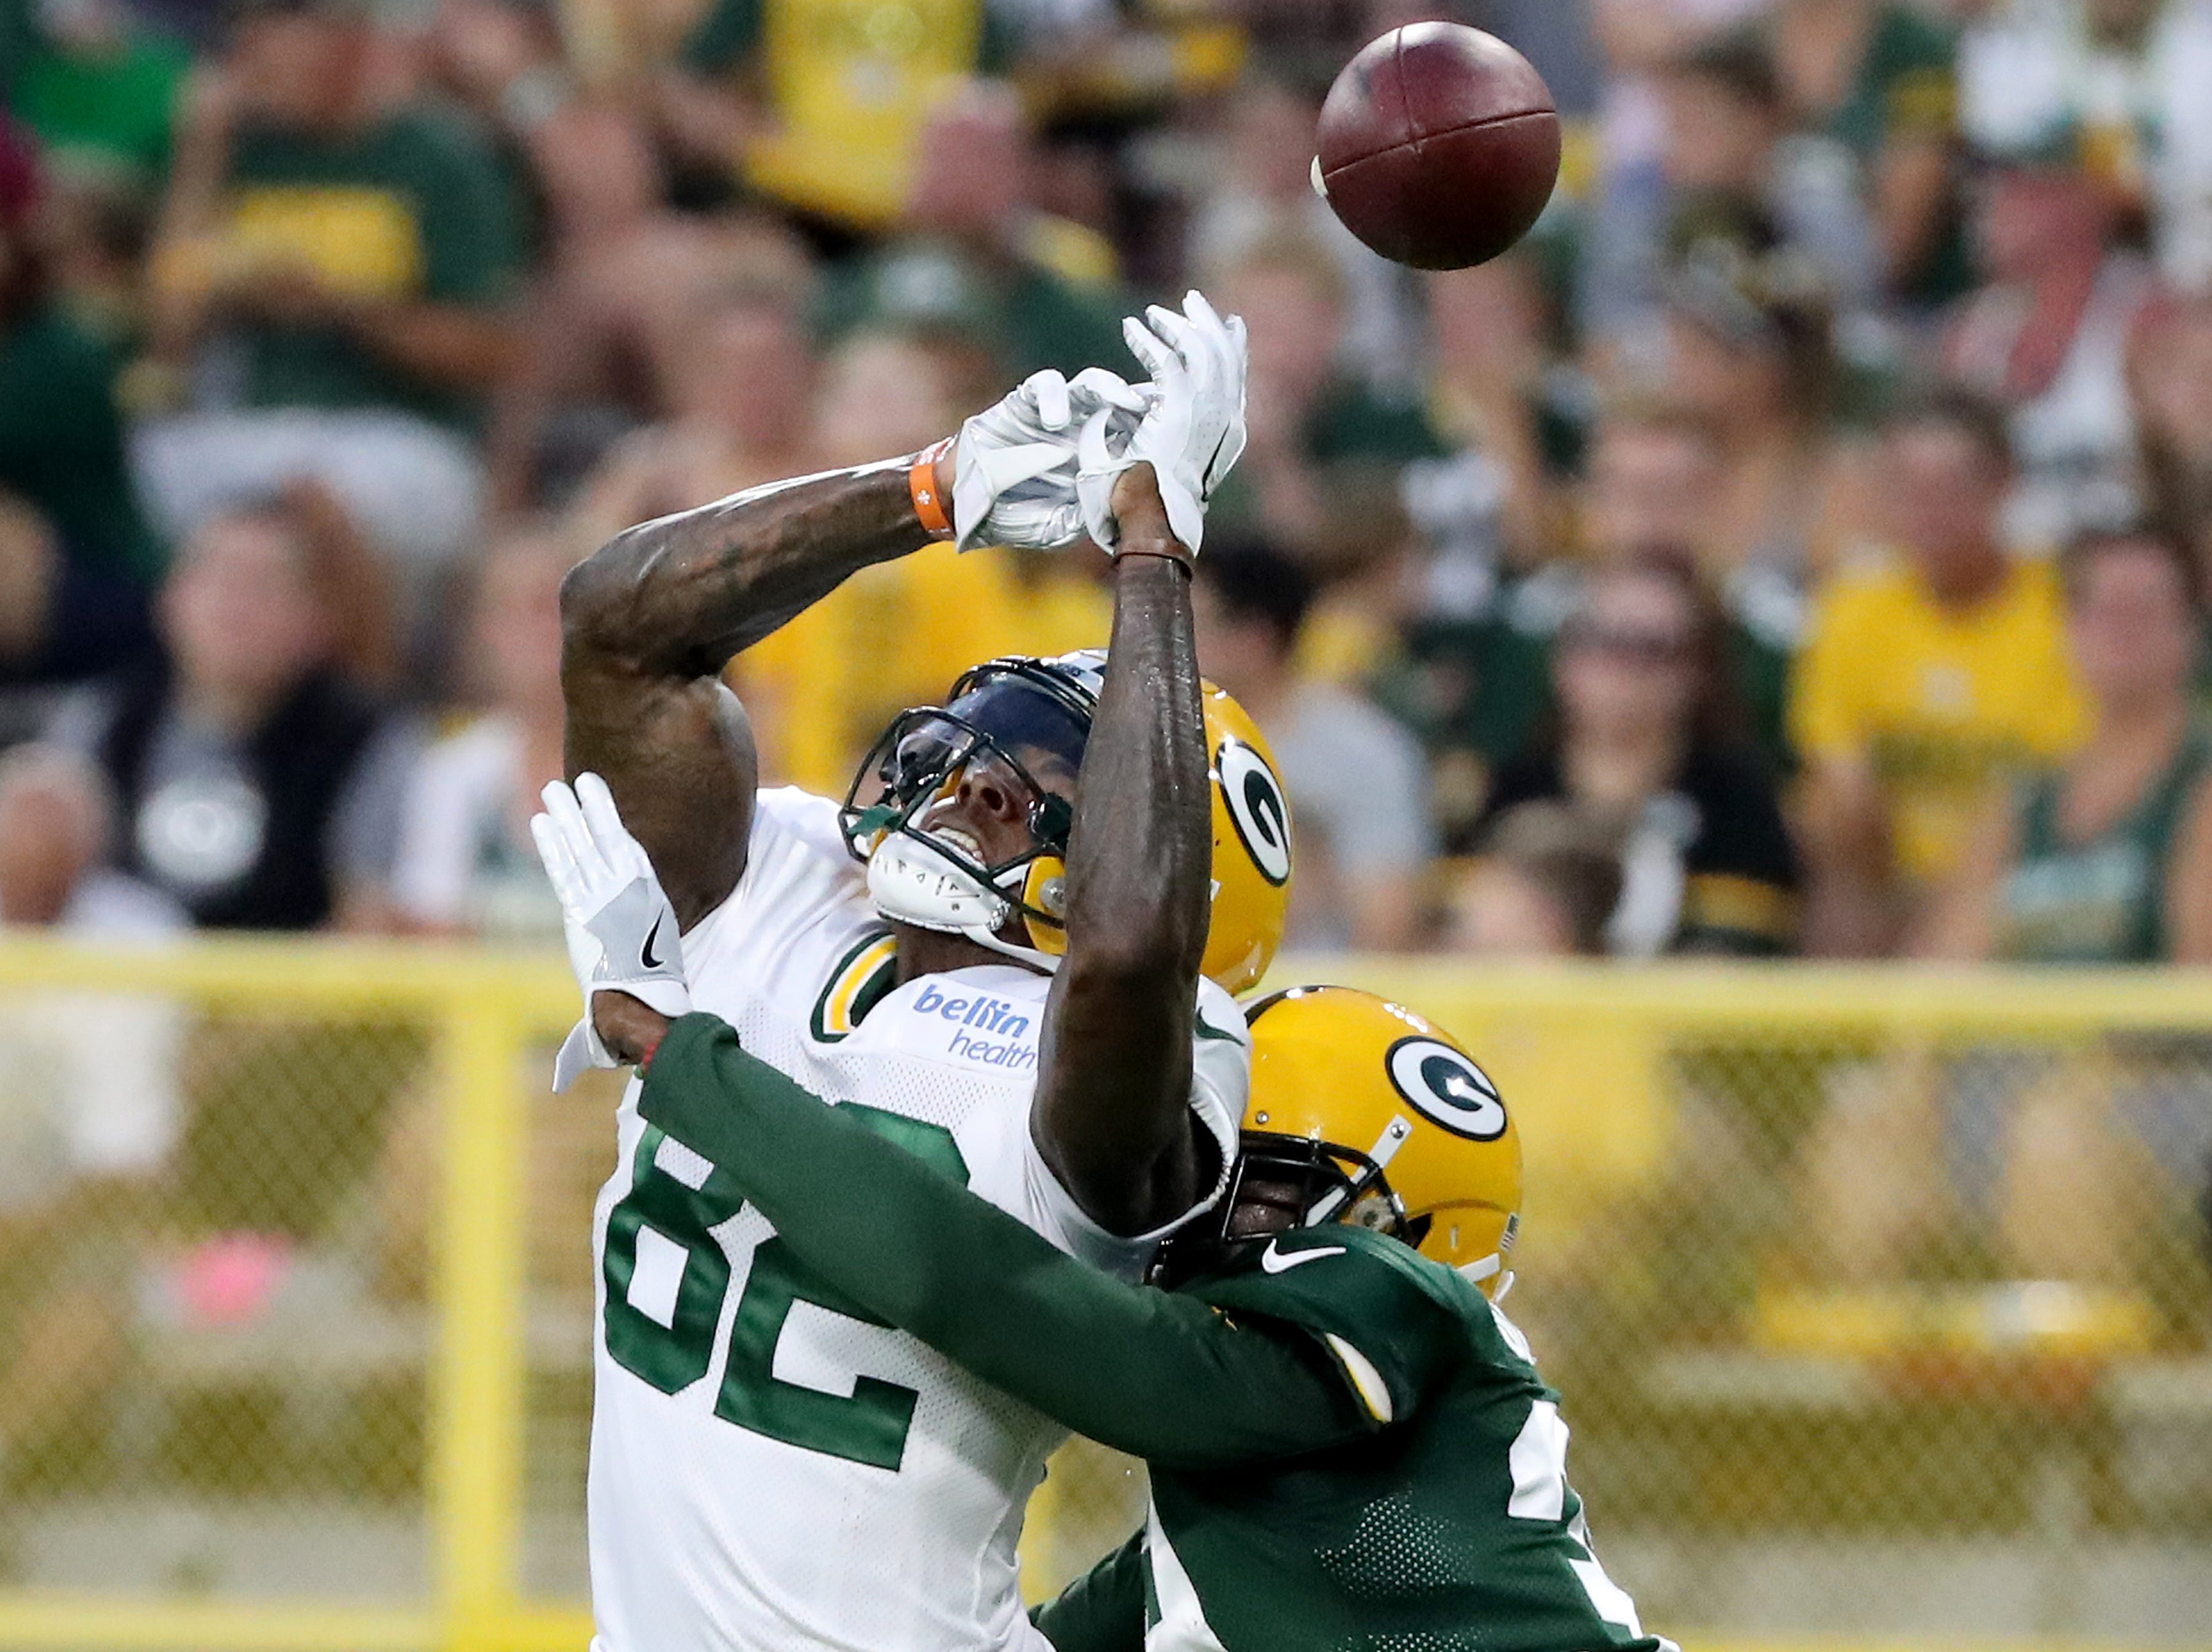 Green Bay Packers defensive back Tramon Williams (38) breaks up a pass to wide receiver J'Mon Moore (82) during Green Bay Packers Family Night  Saturday, August 4, 2018 at Lambeau Field in Green Bay, Wis.,